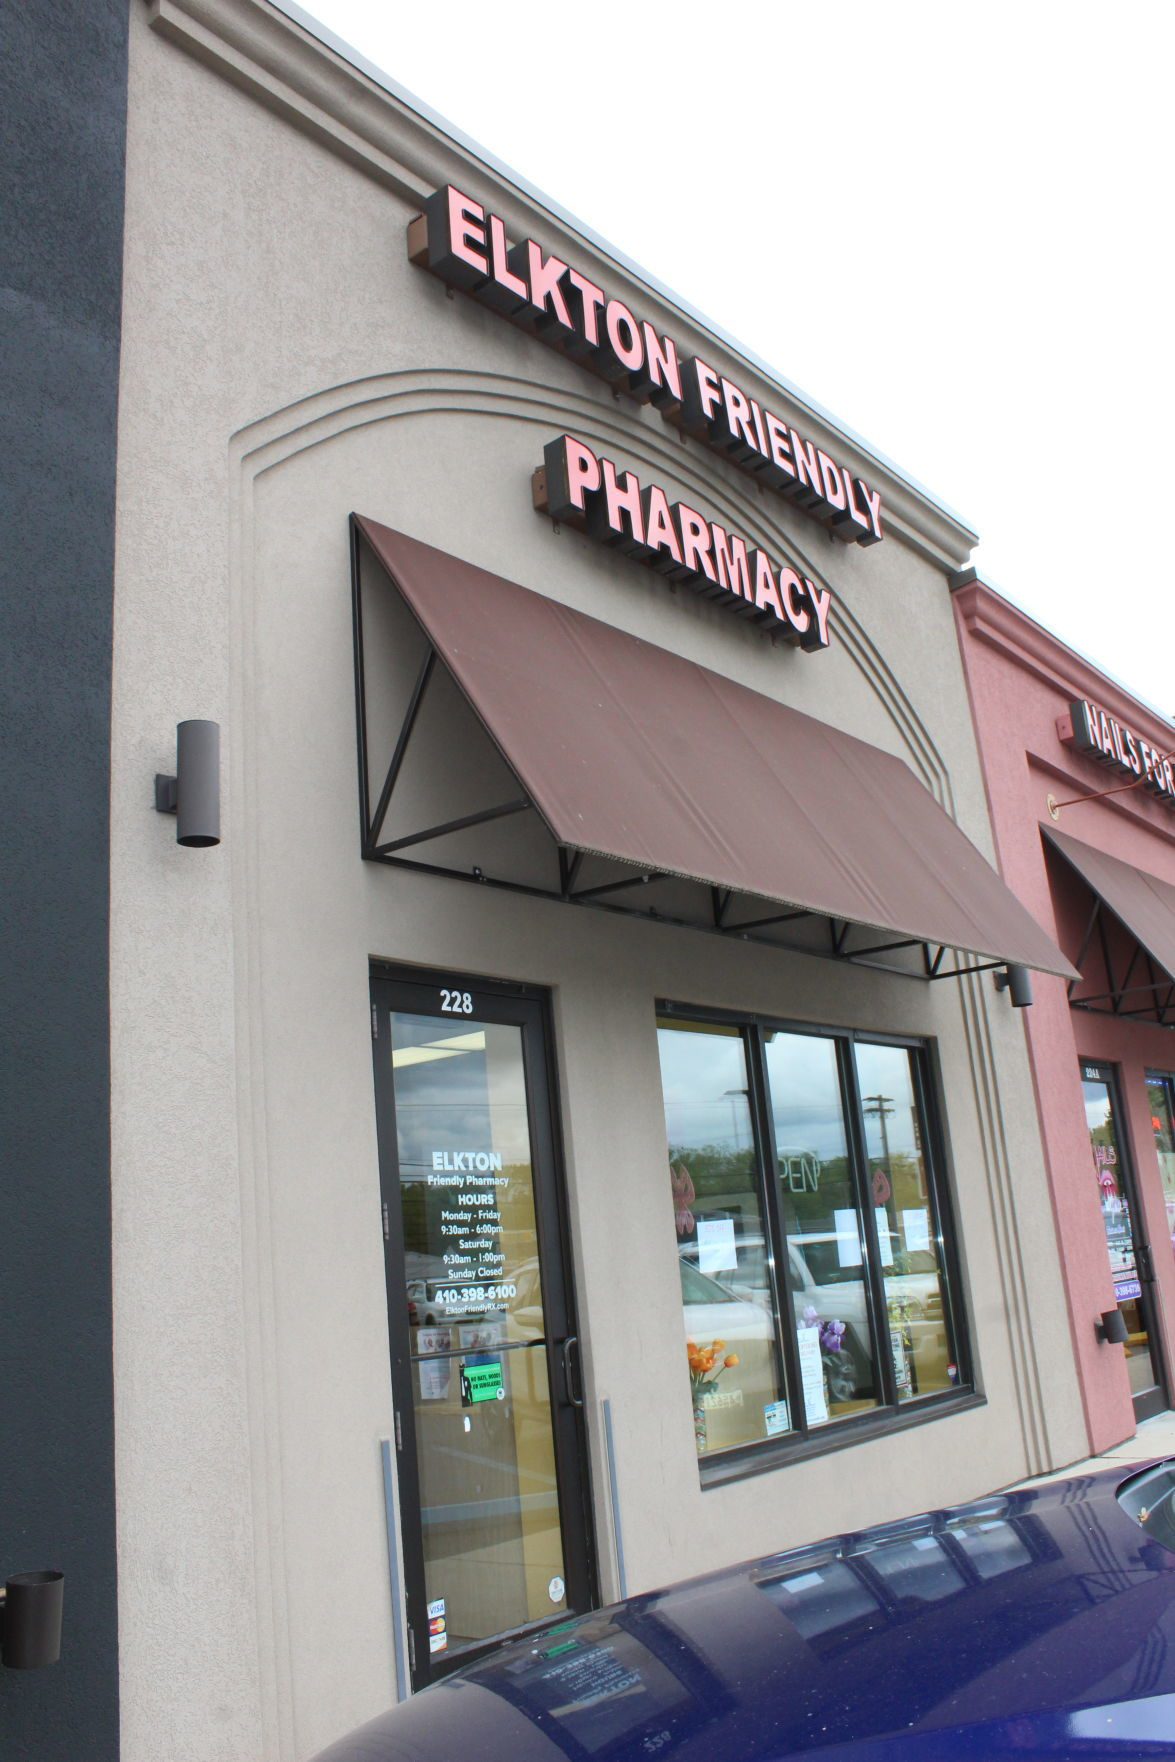 Elkton Friendly Pharmacy closes